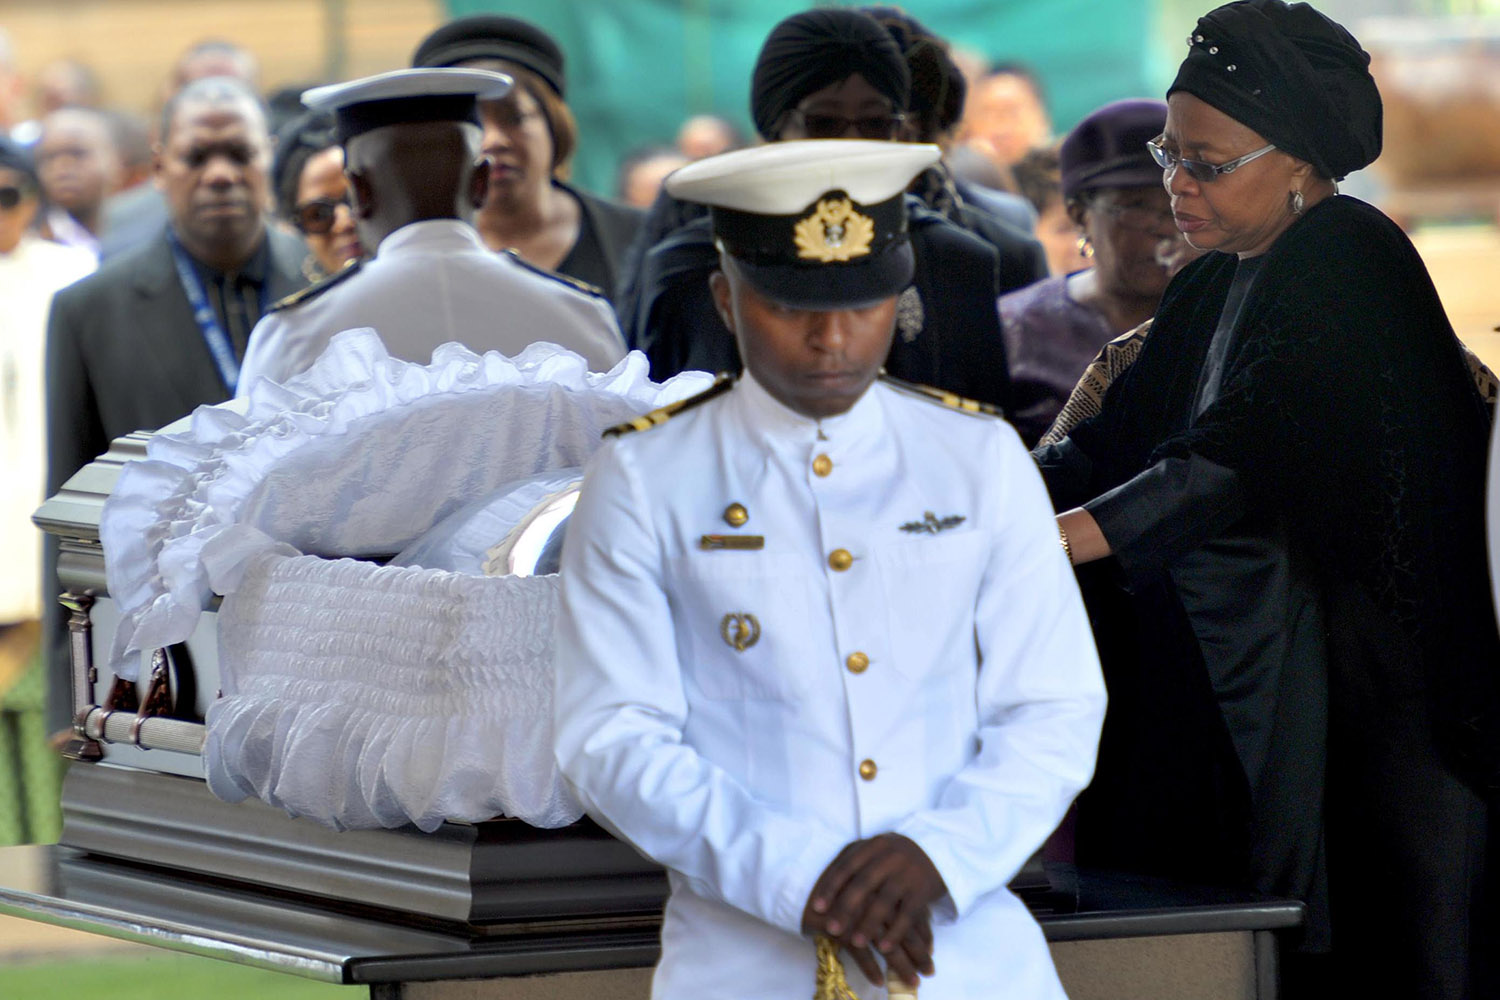 Dec. 11, 2013. This photo provided by the Government Communication and Information System of South Africa shows Nelson Mandela's widow Graca Machel pays her respects to former South African President Nelson Mandela during the lying in state at the Union Buildings in Pretoria, South Africa.